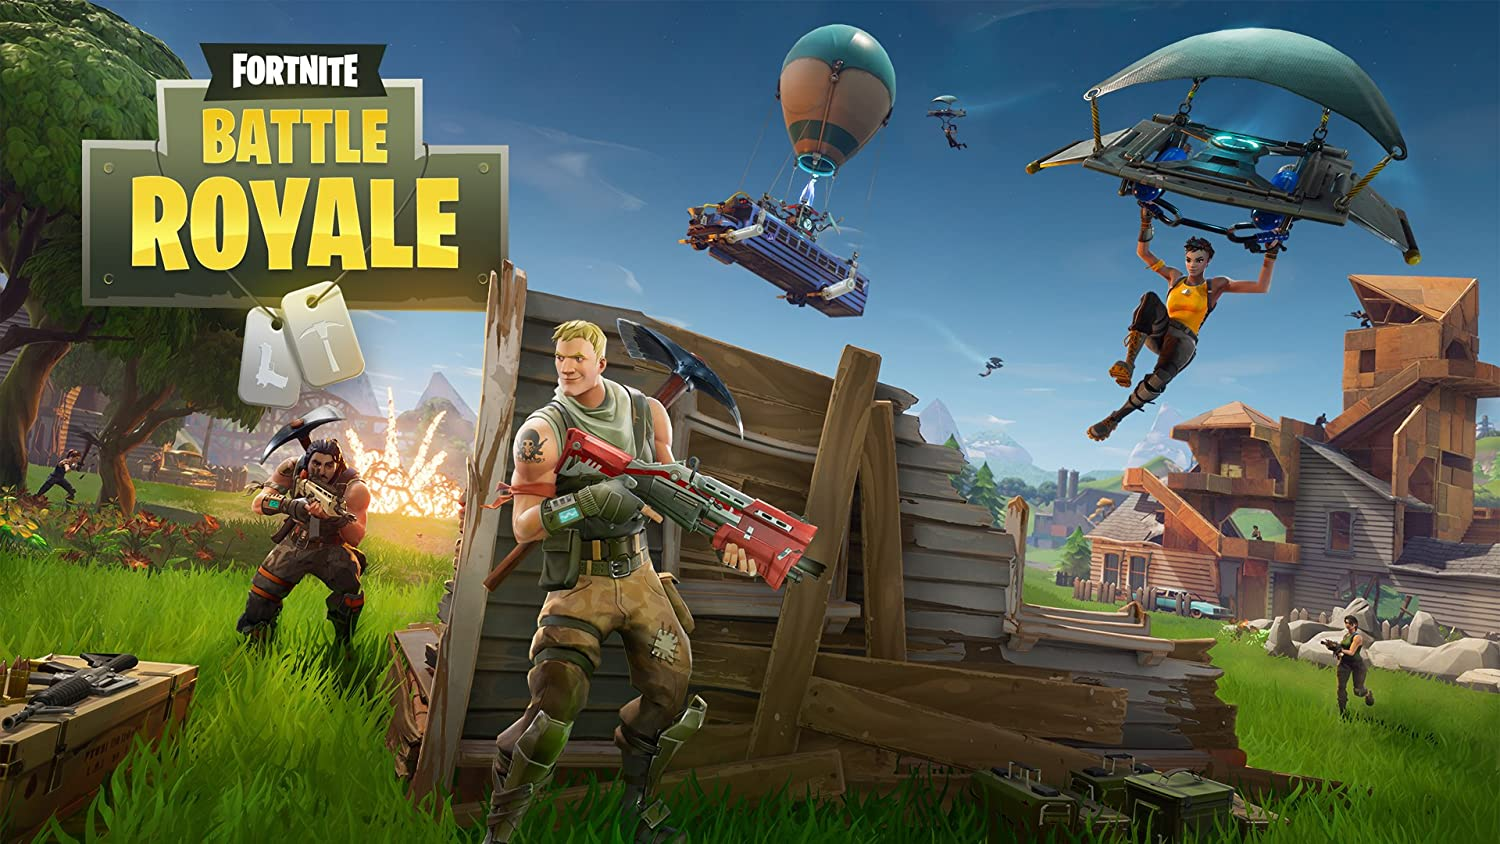 Funky Store Fornite Battle Royale Game Silk Poster (Without Frame) Wall Decor 24x36 inches (2)